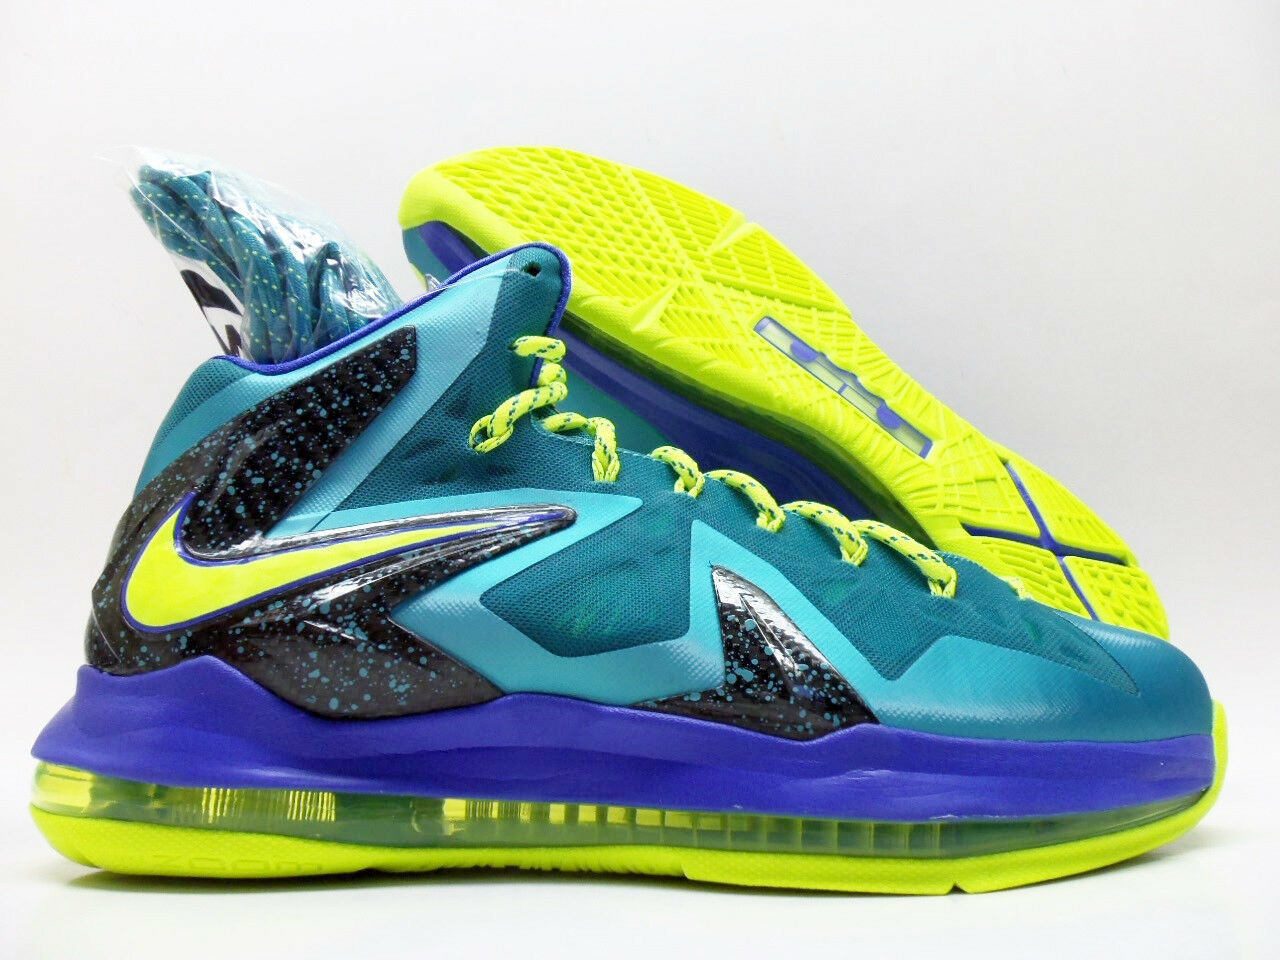 NIKE LEBRON X P.S. ELITE SUPERHERO PACK SPORT TURQ/VOLT MEN'S 7.5 Price reduction Cheap and beautiful fashion